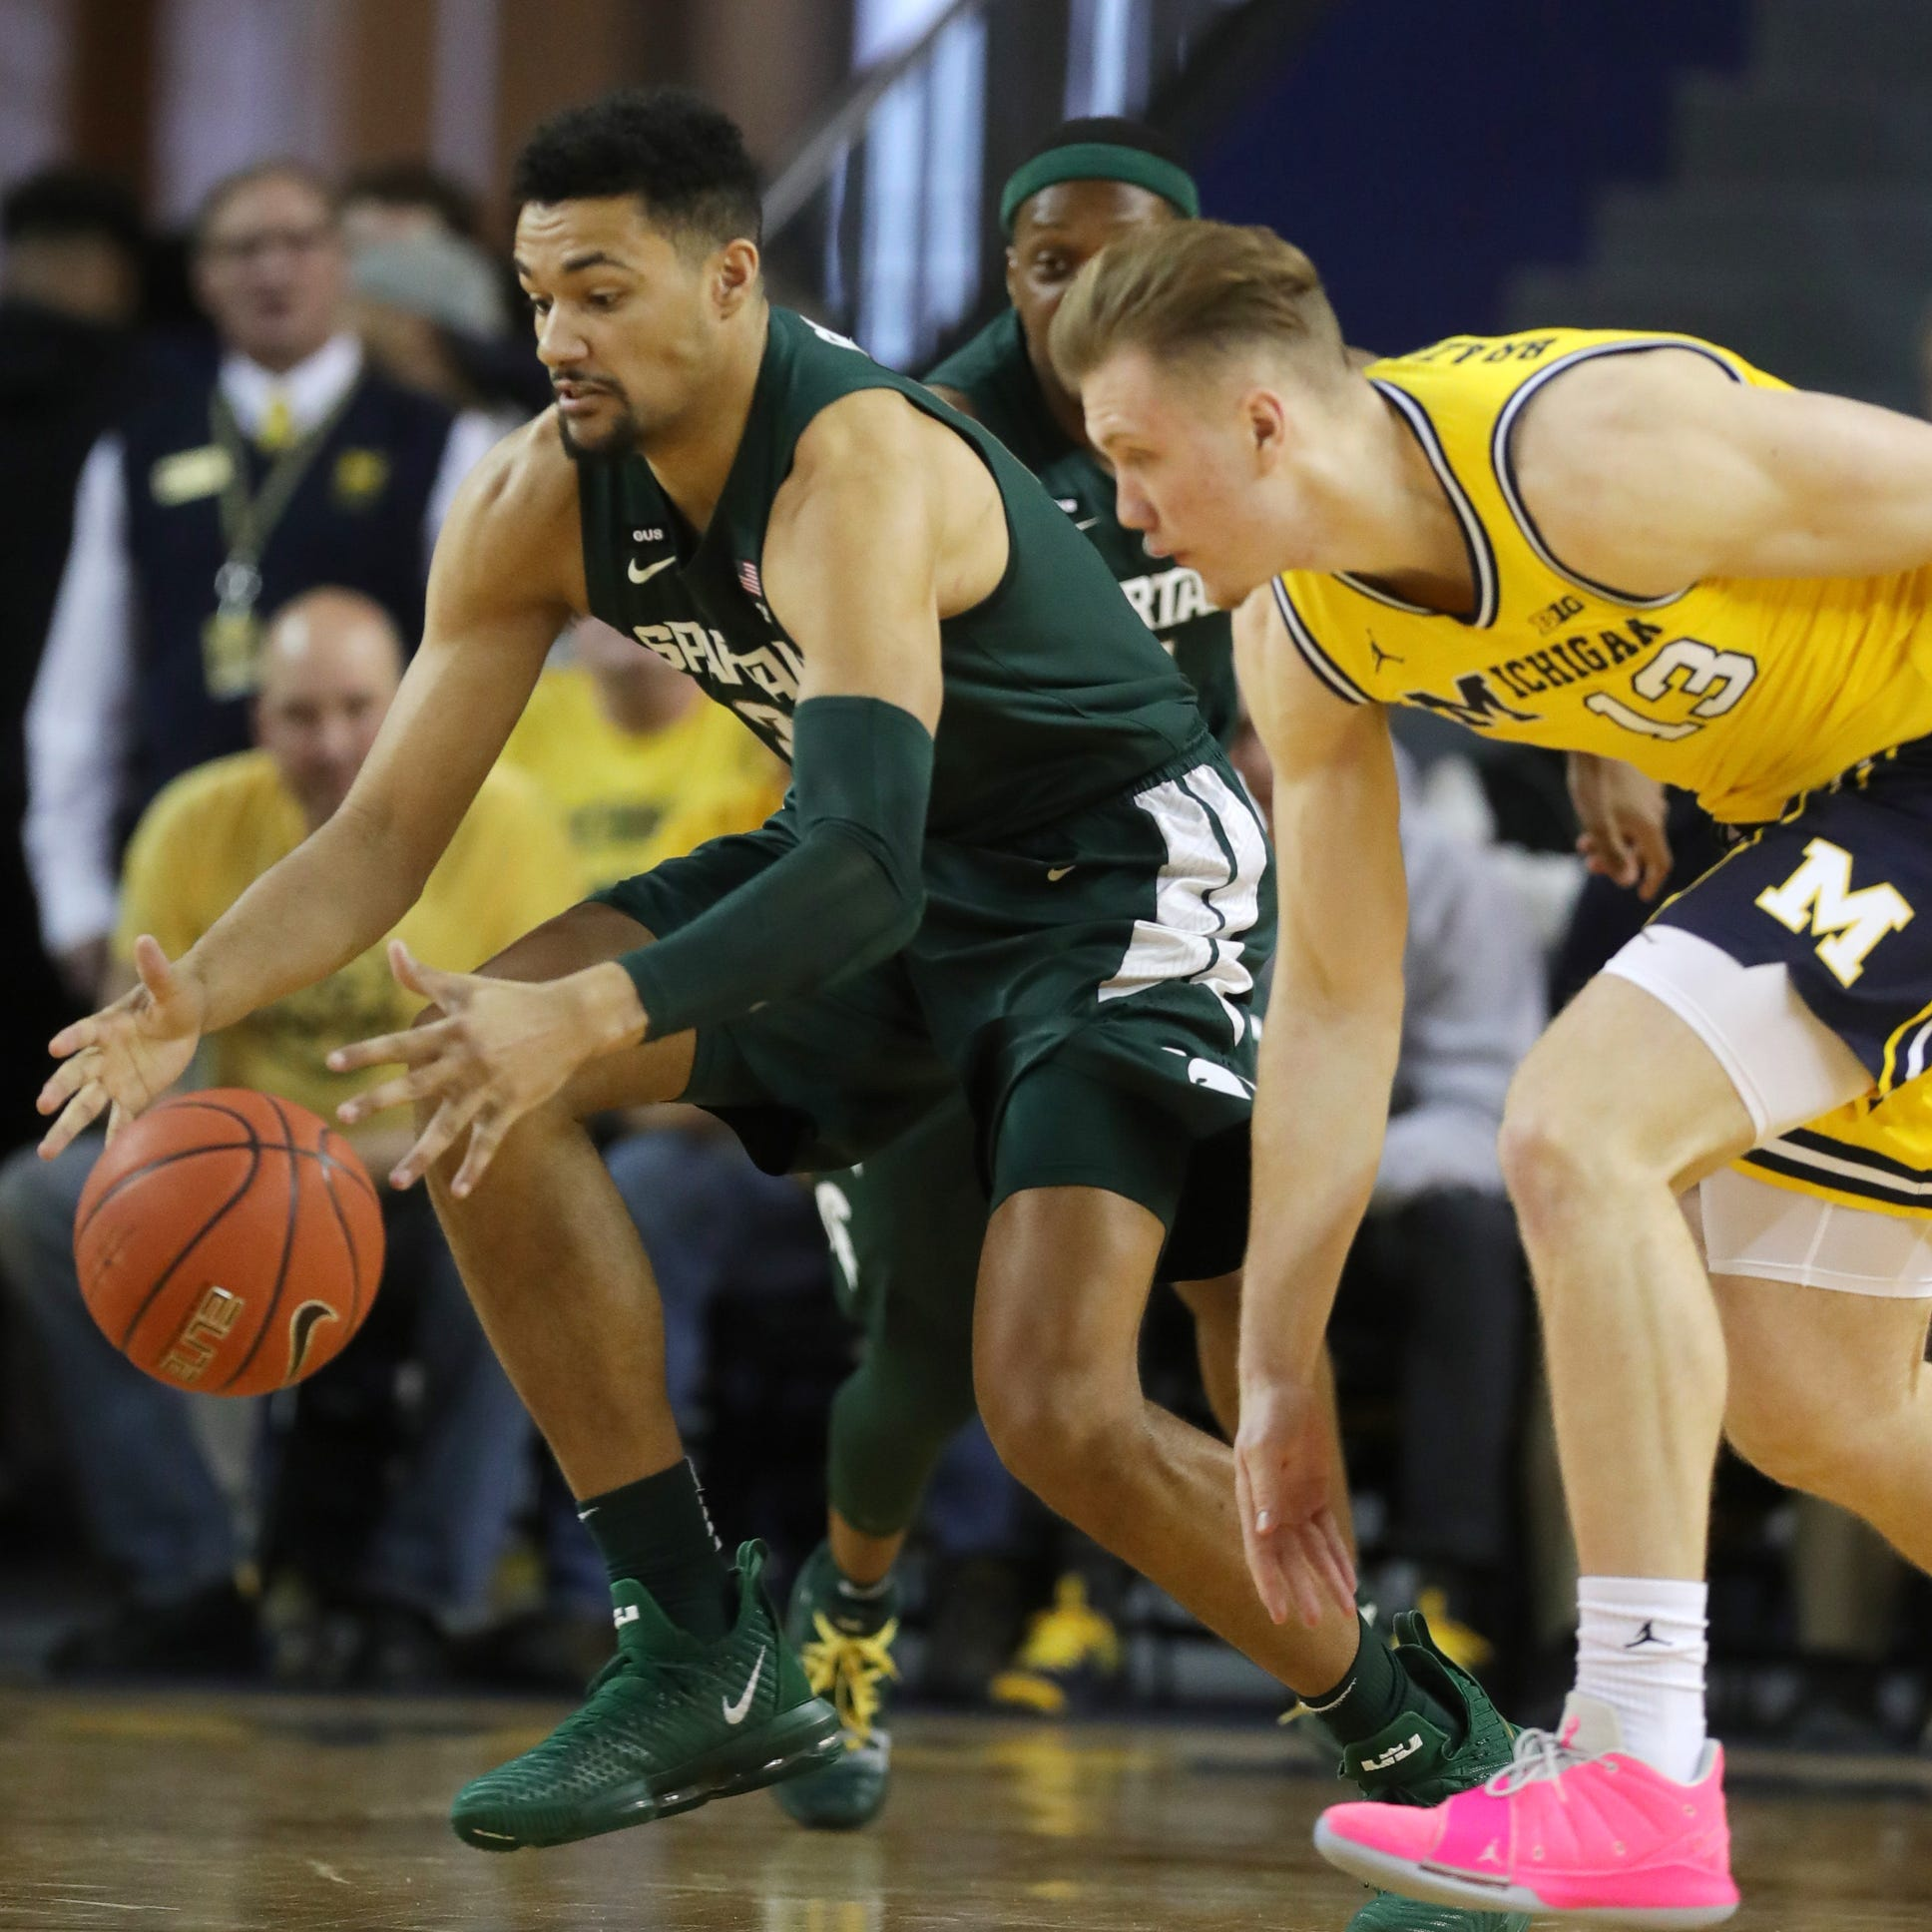 No. 9 Michigan State vs. No. 7 Michigan basketball: Who has the edge?